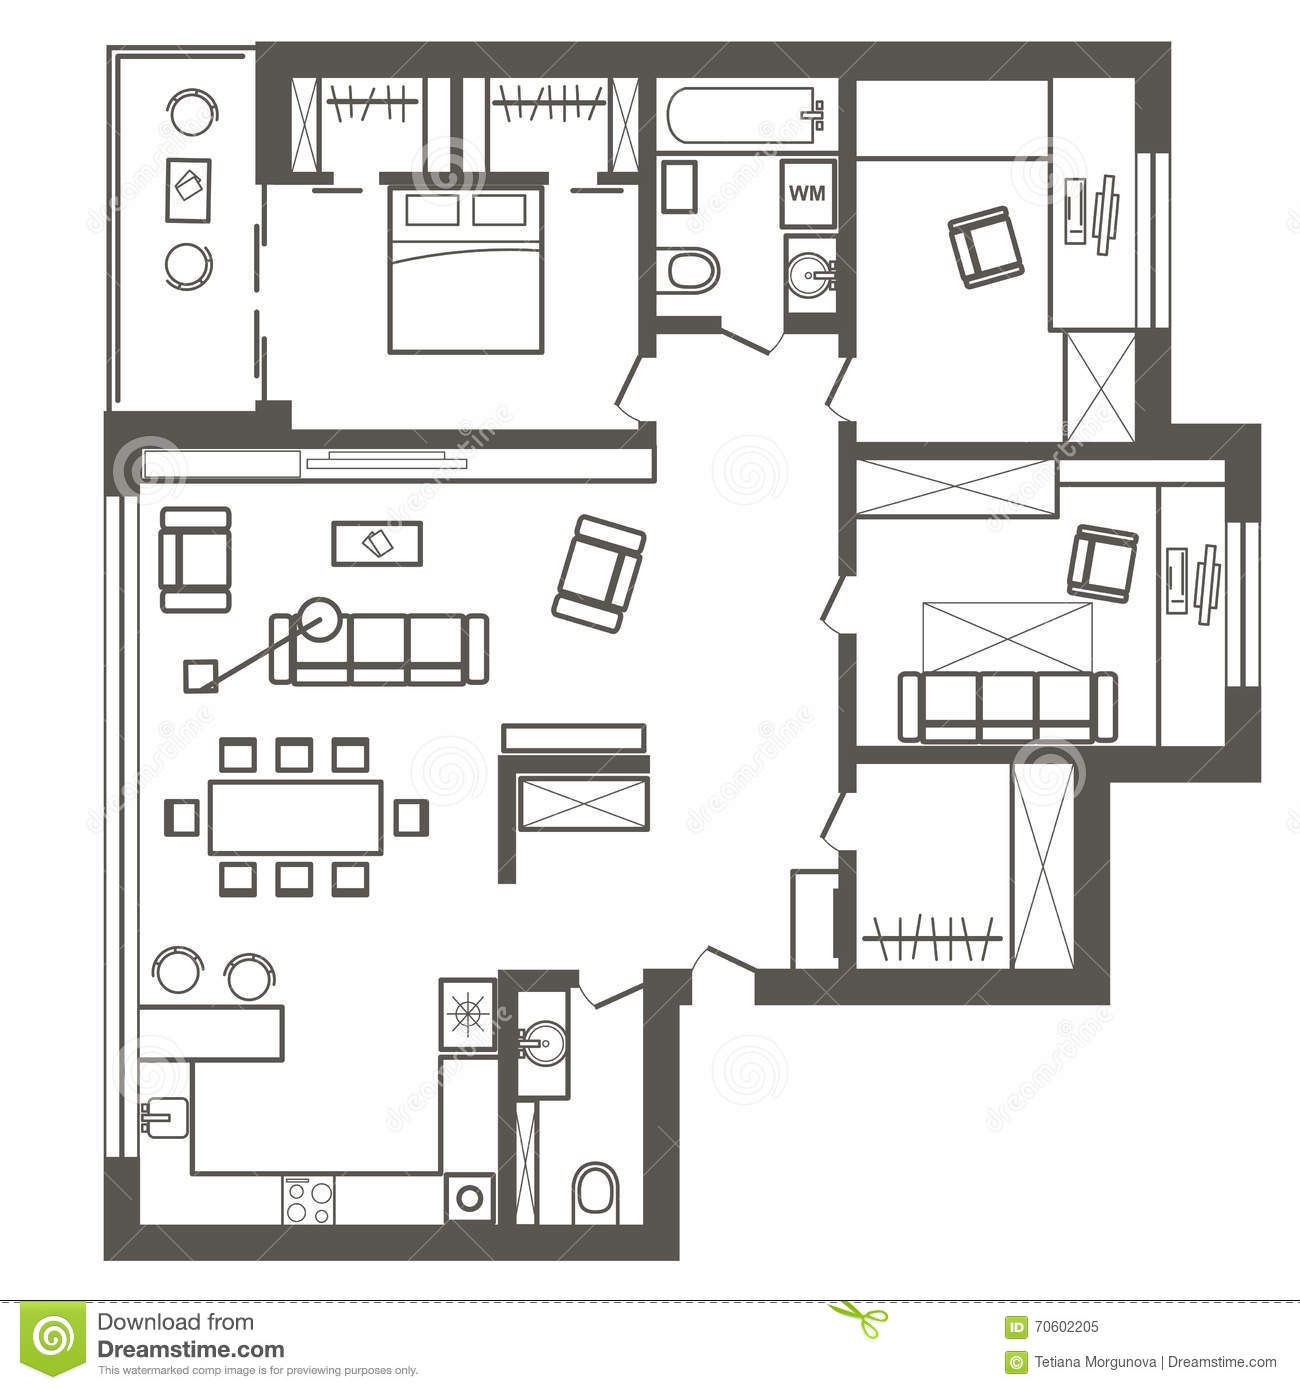 Architectural Sketch Plan Of Three Bedroom Apartment Stock